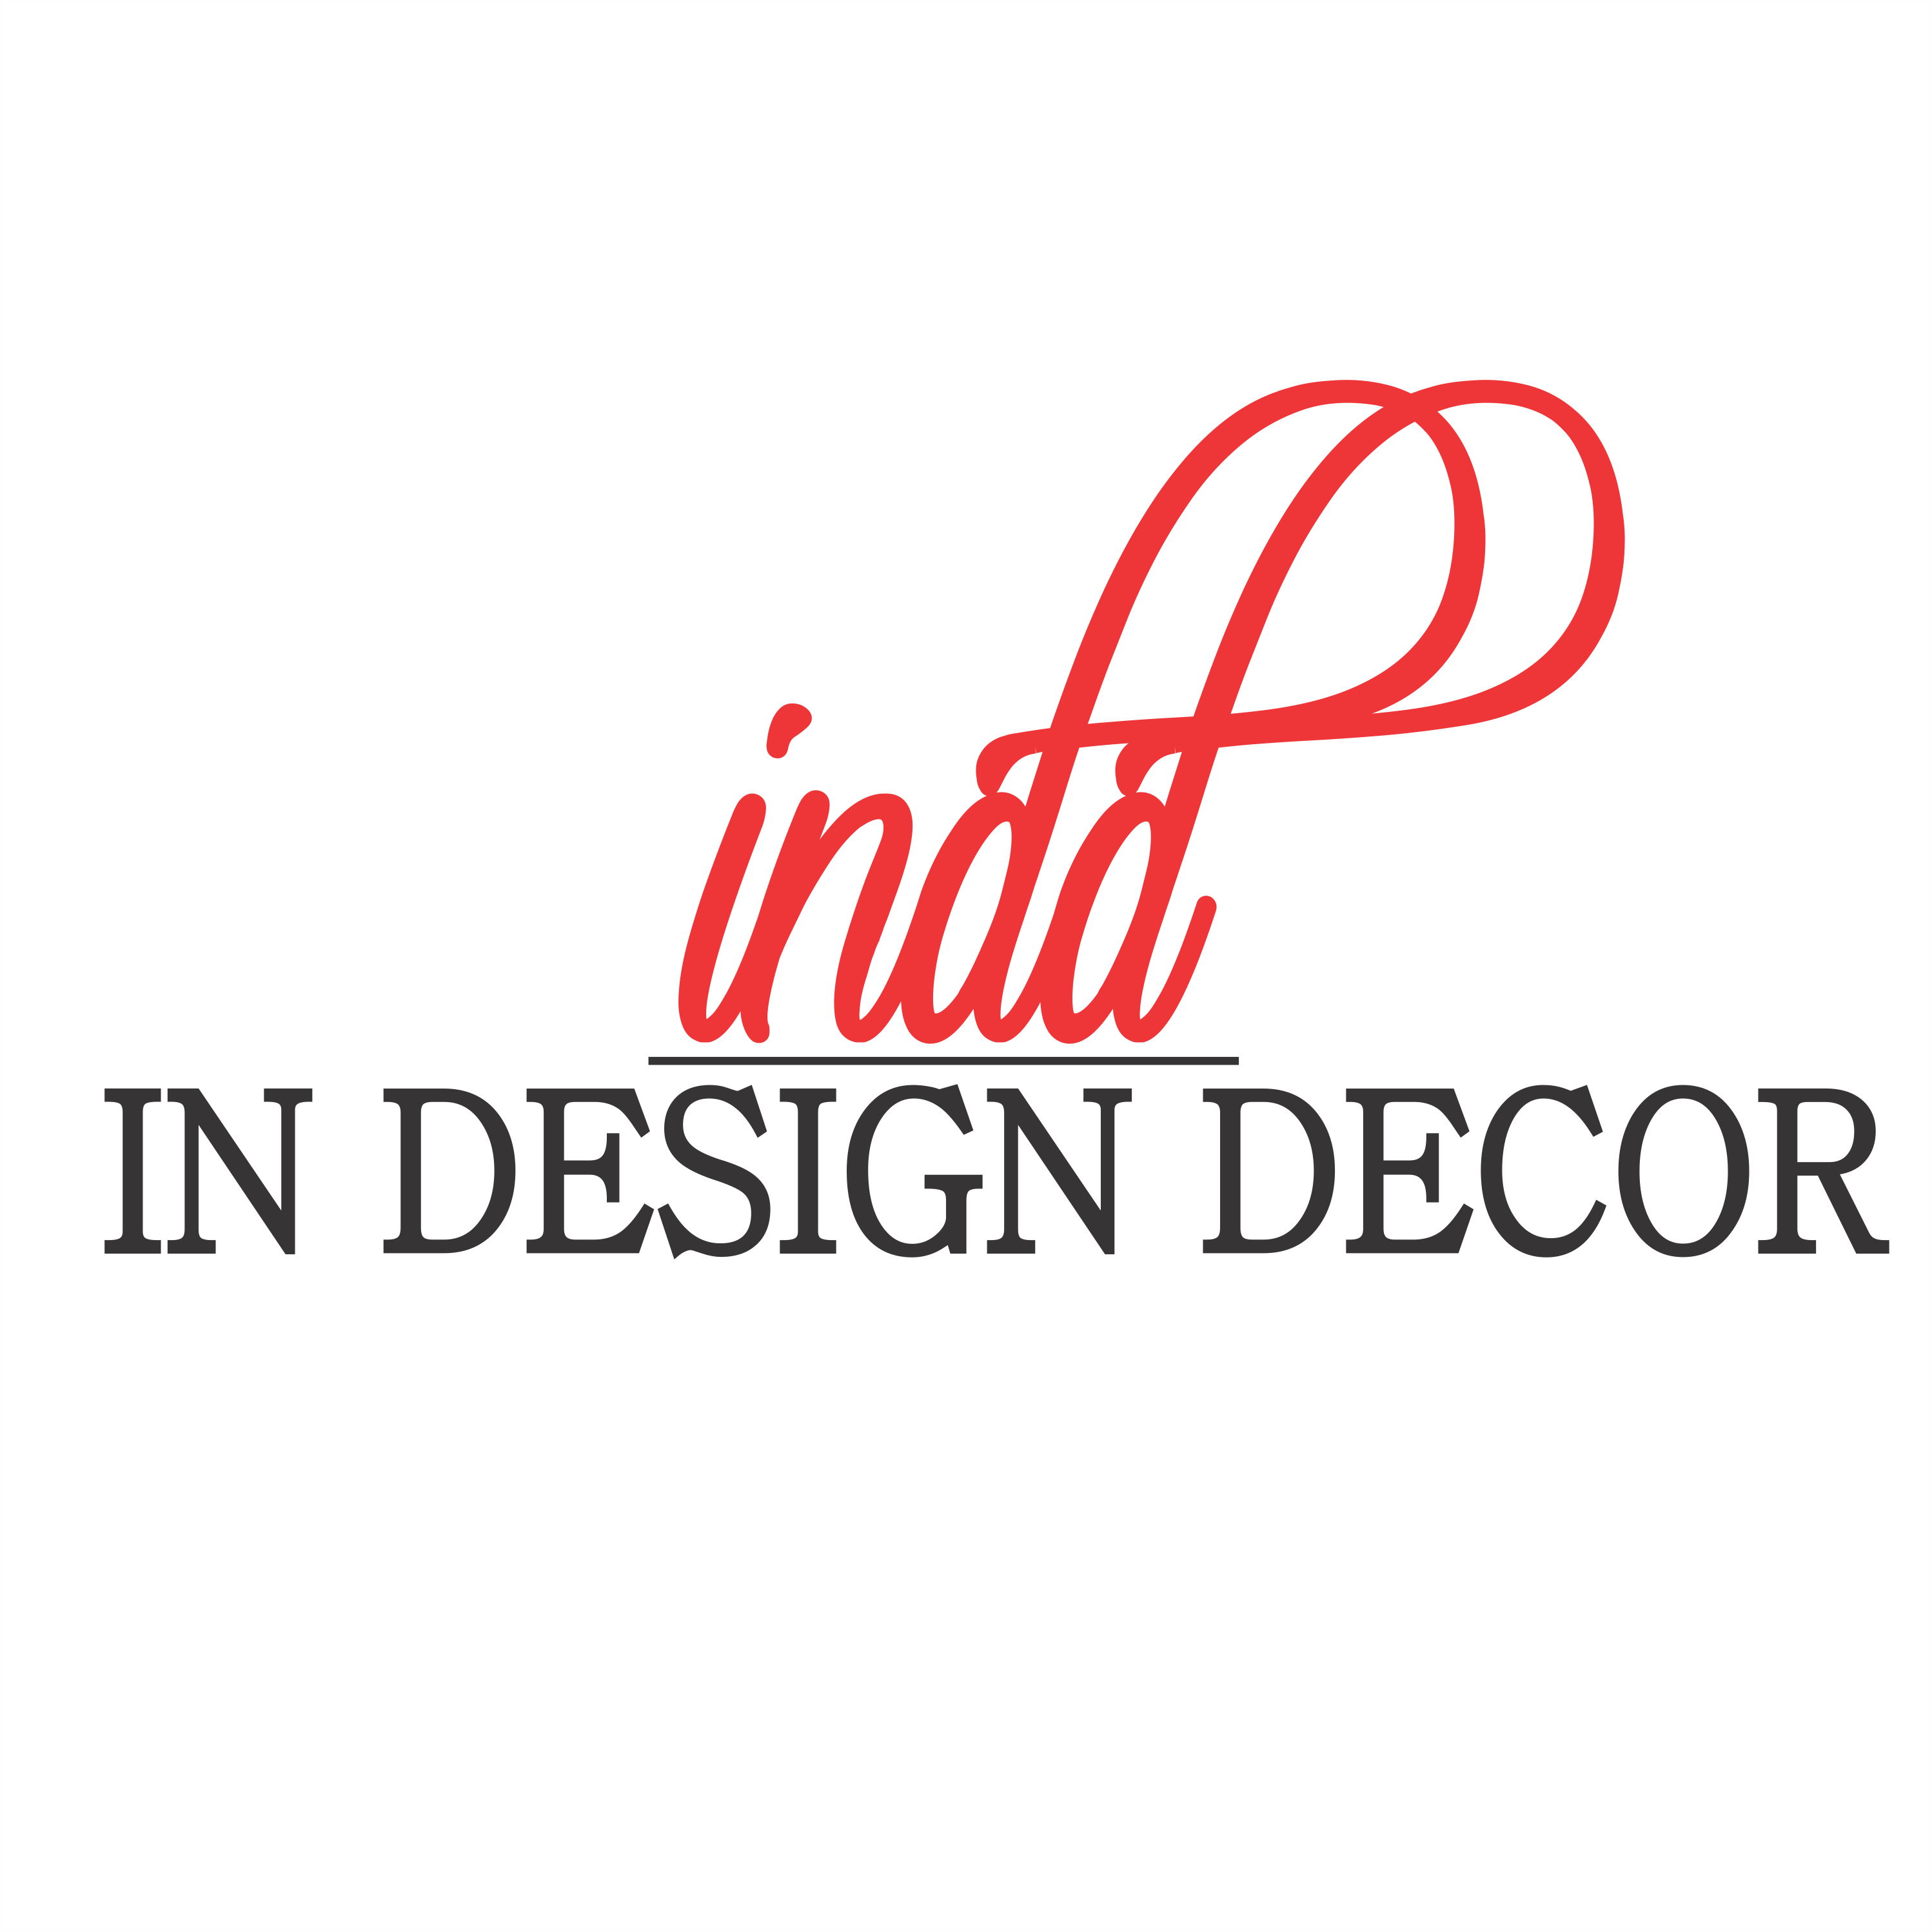 In Design Decor